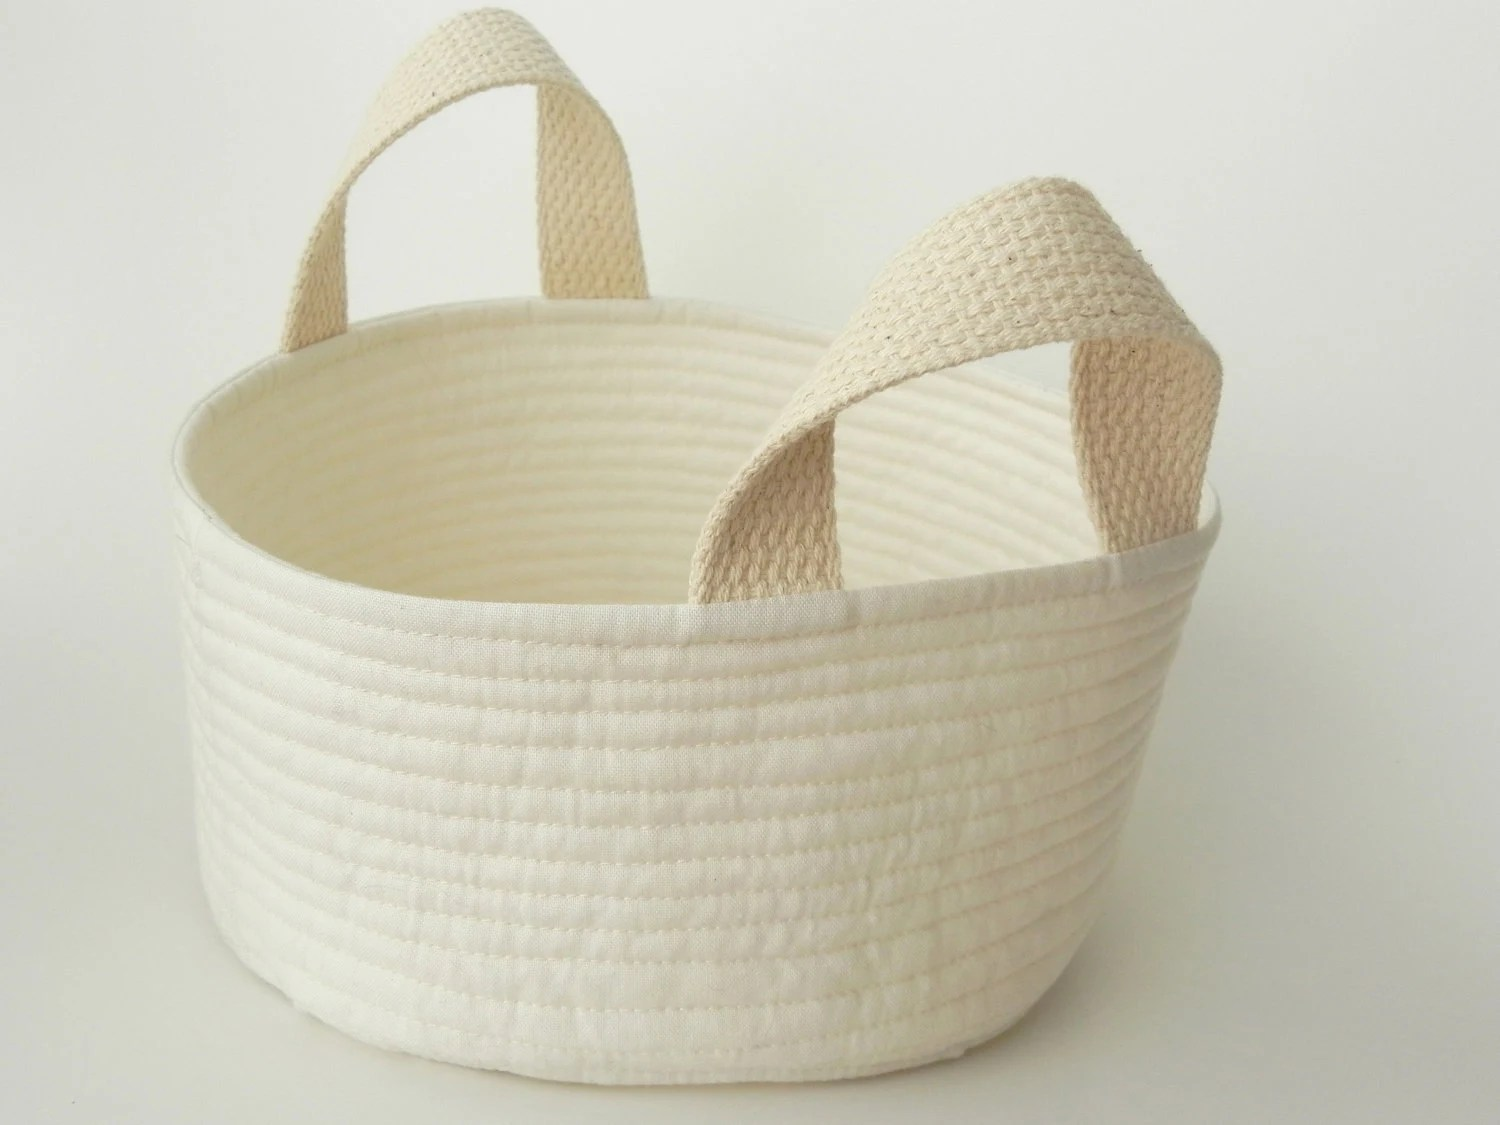 "Fabric Bin - Fabric Basket - Quilted Cotton Storage Bucket with Handles - 7"" wide x 4"" tall - Natural"